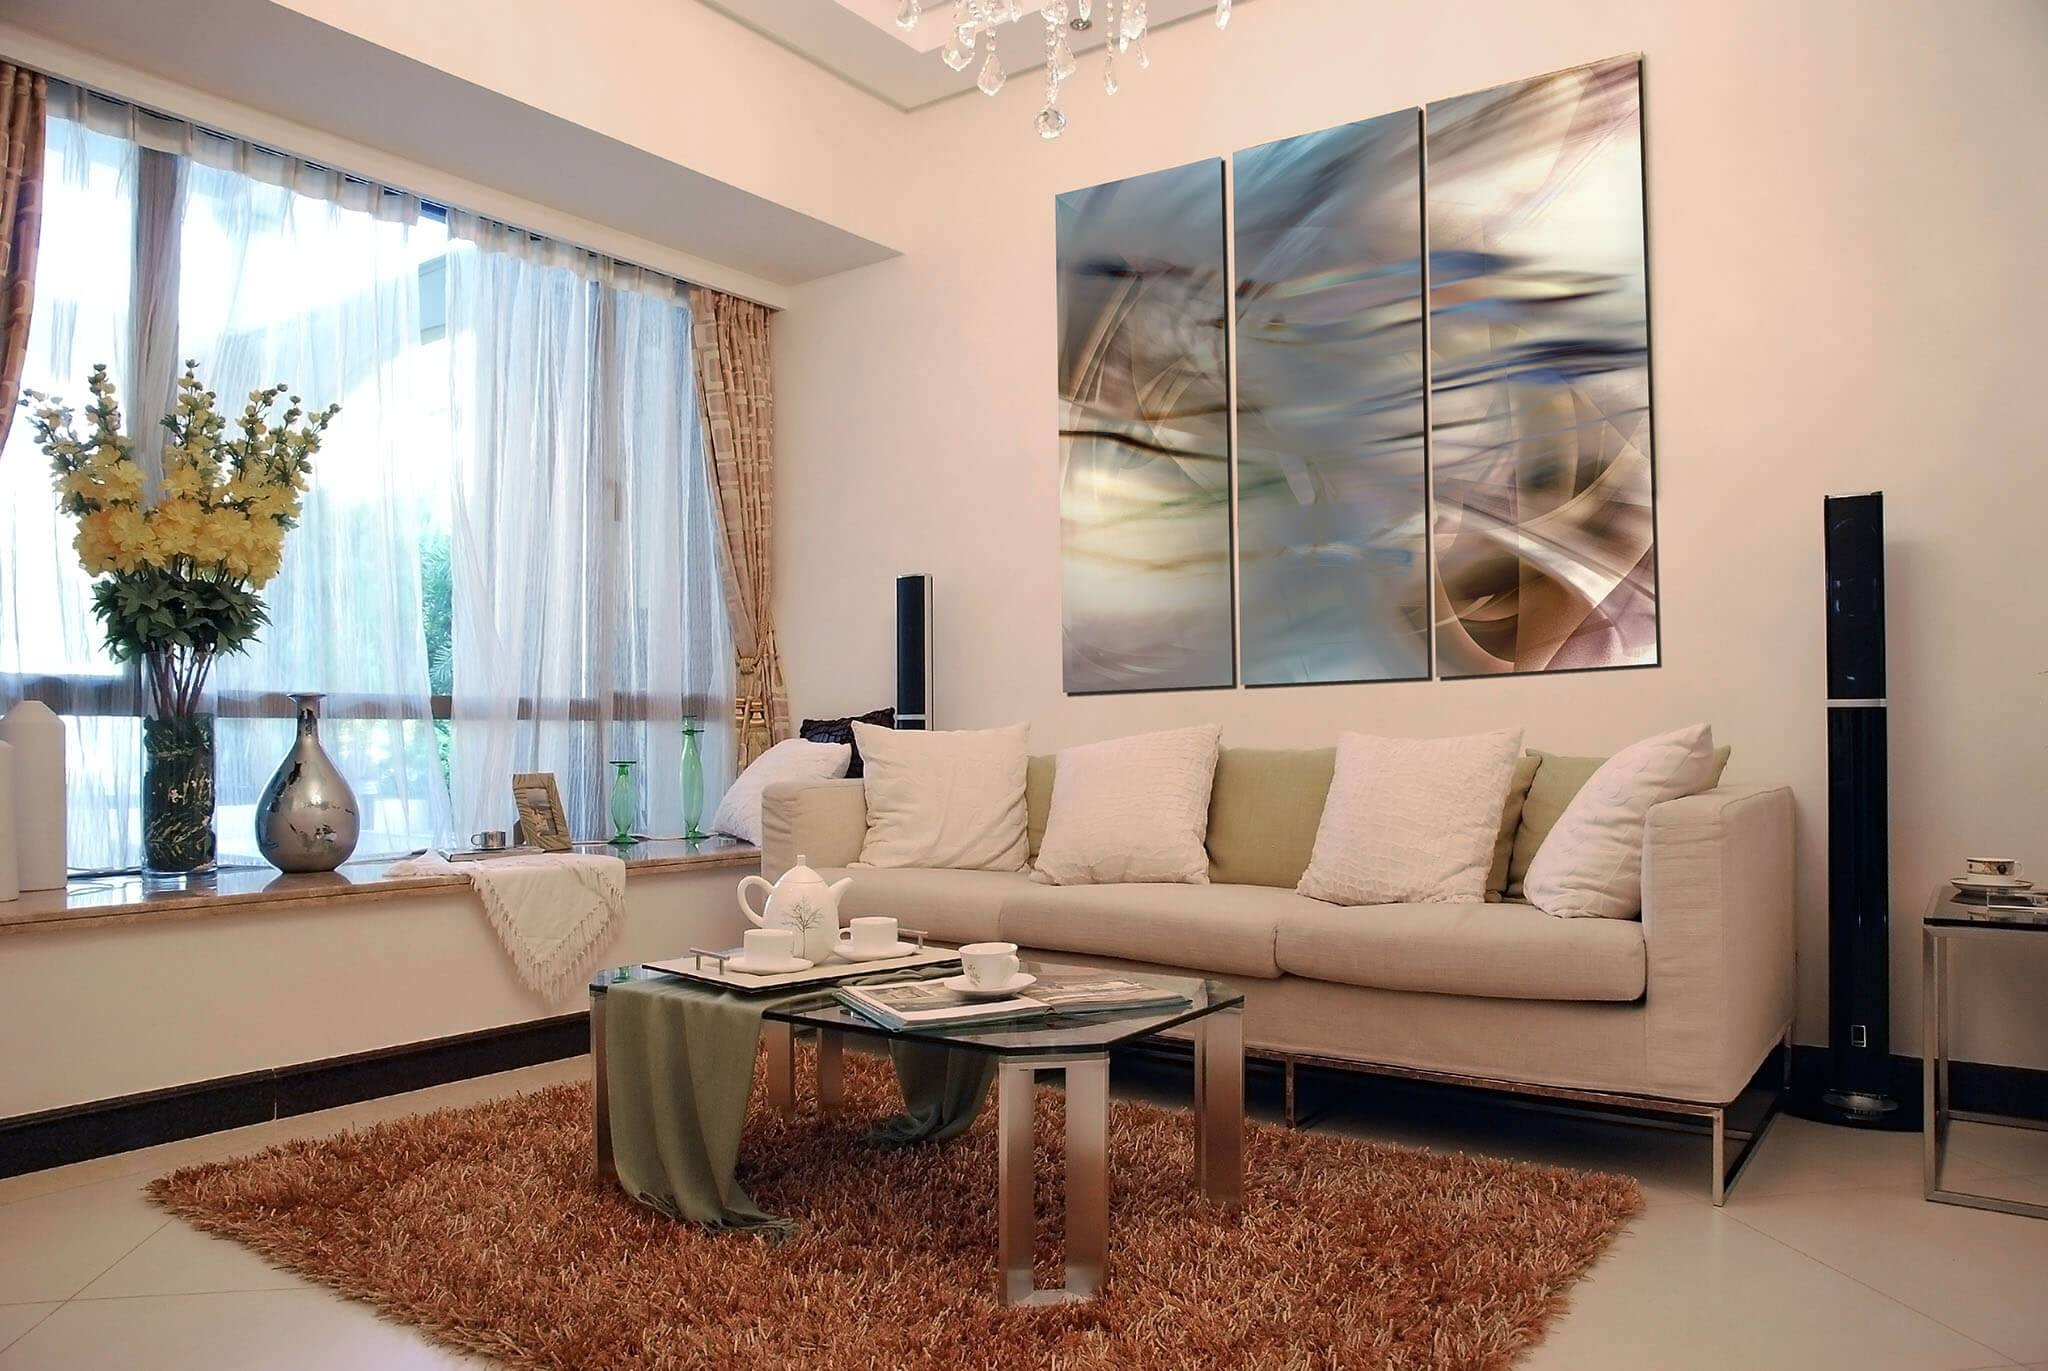 The Best Metal Wall Art For Living Room